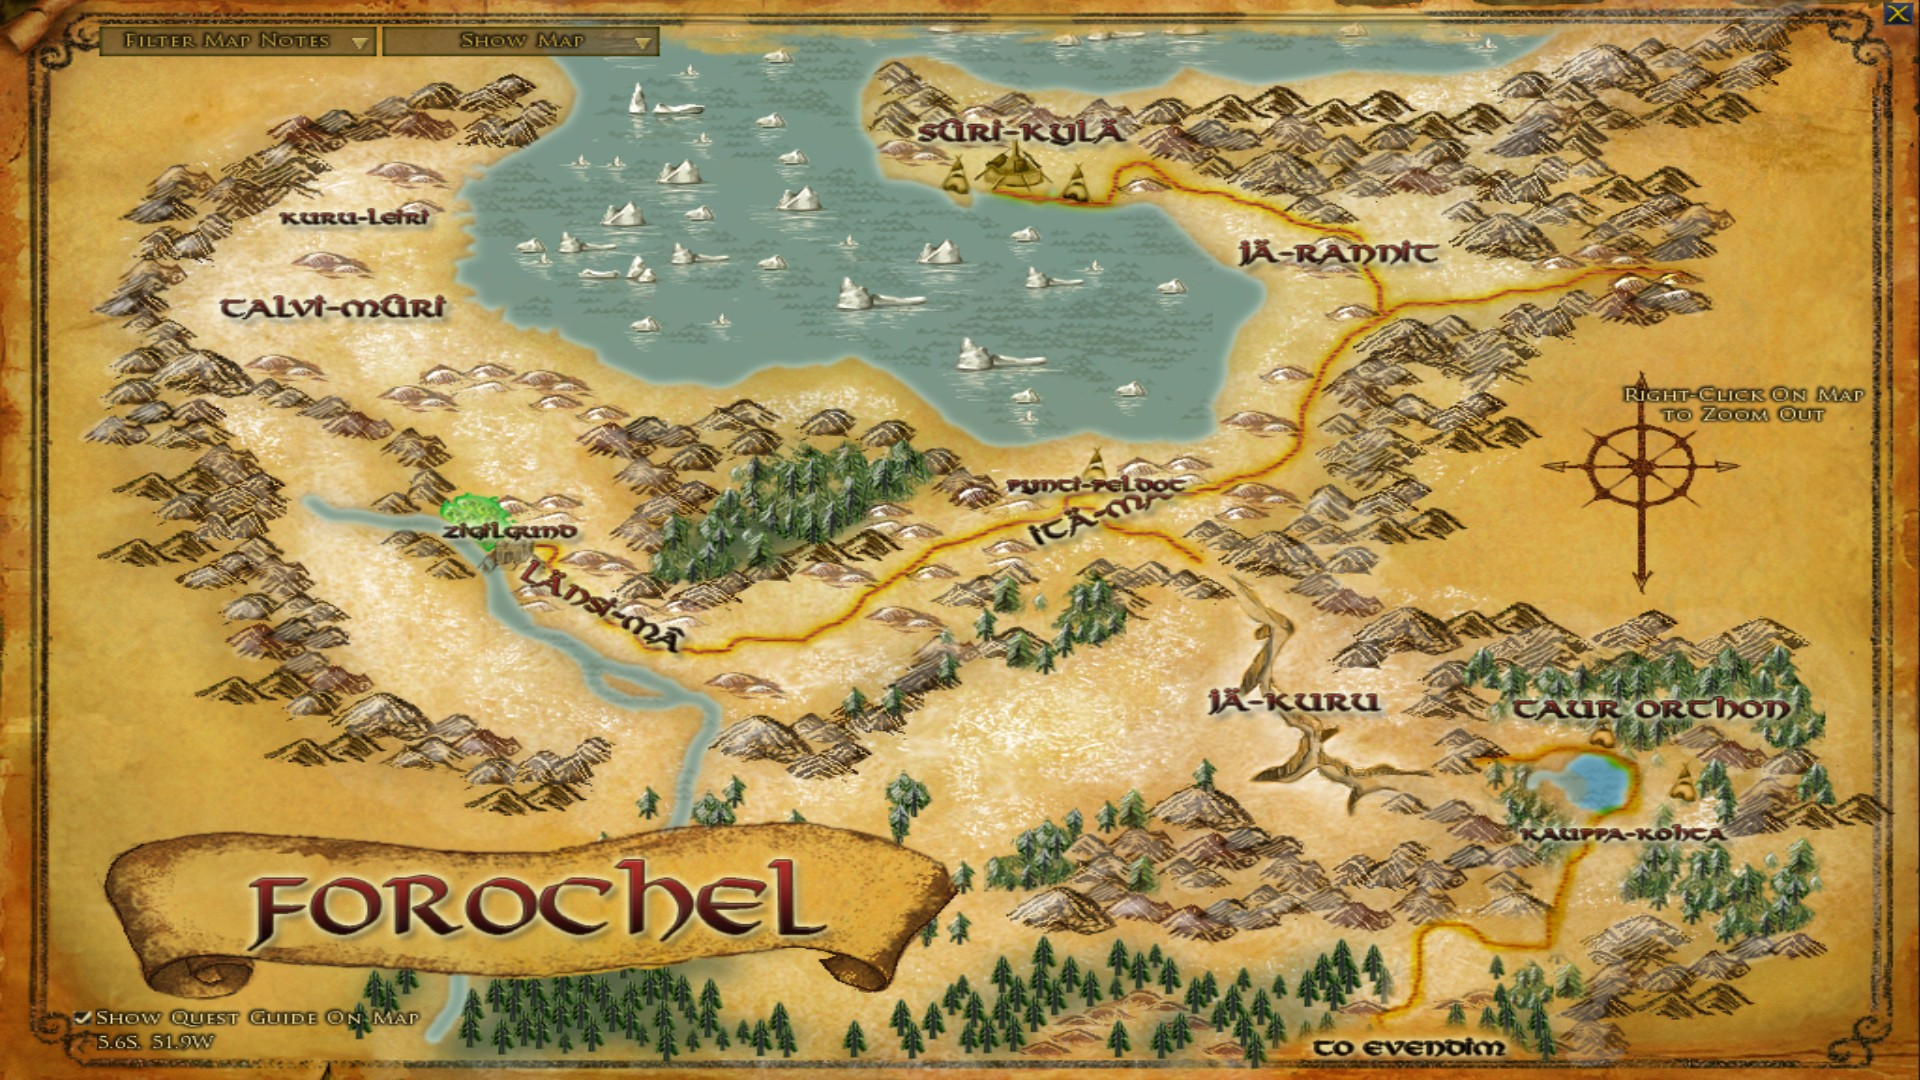 Forochel  The One Wiki to Rule Them All  FANDOM powered by Wikia